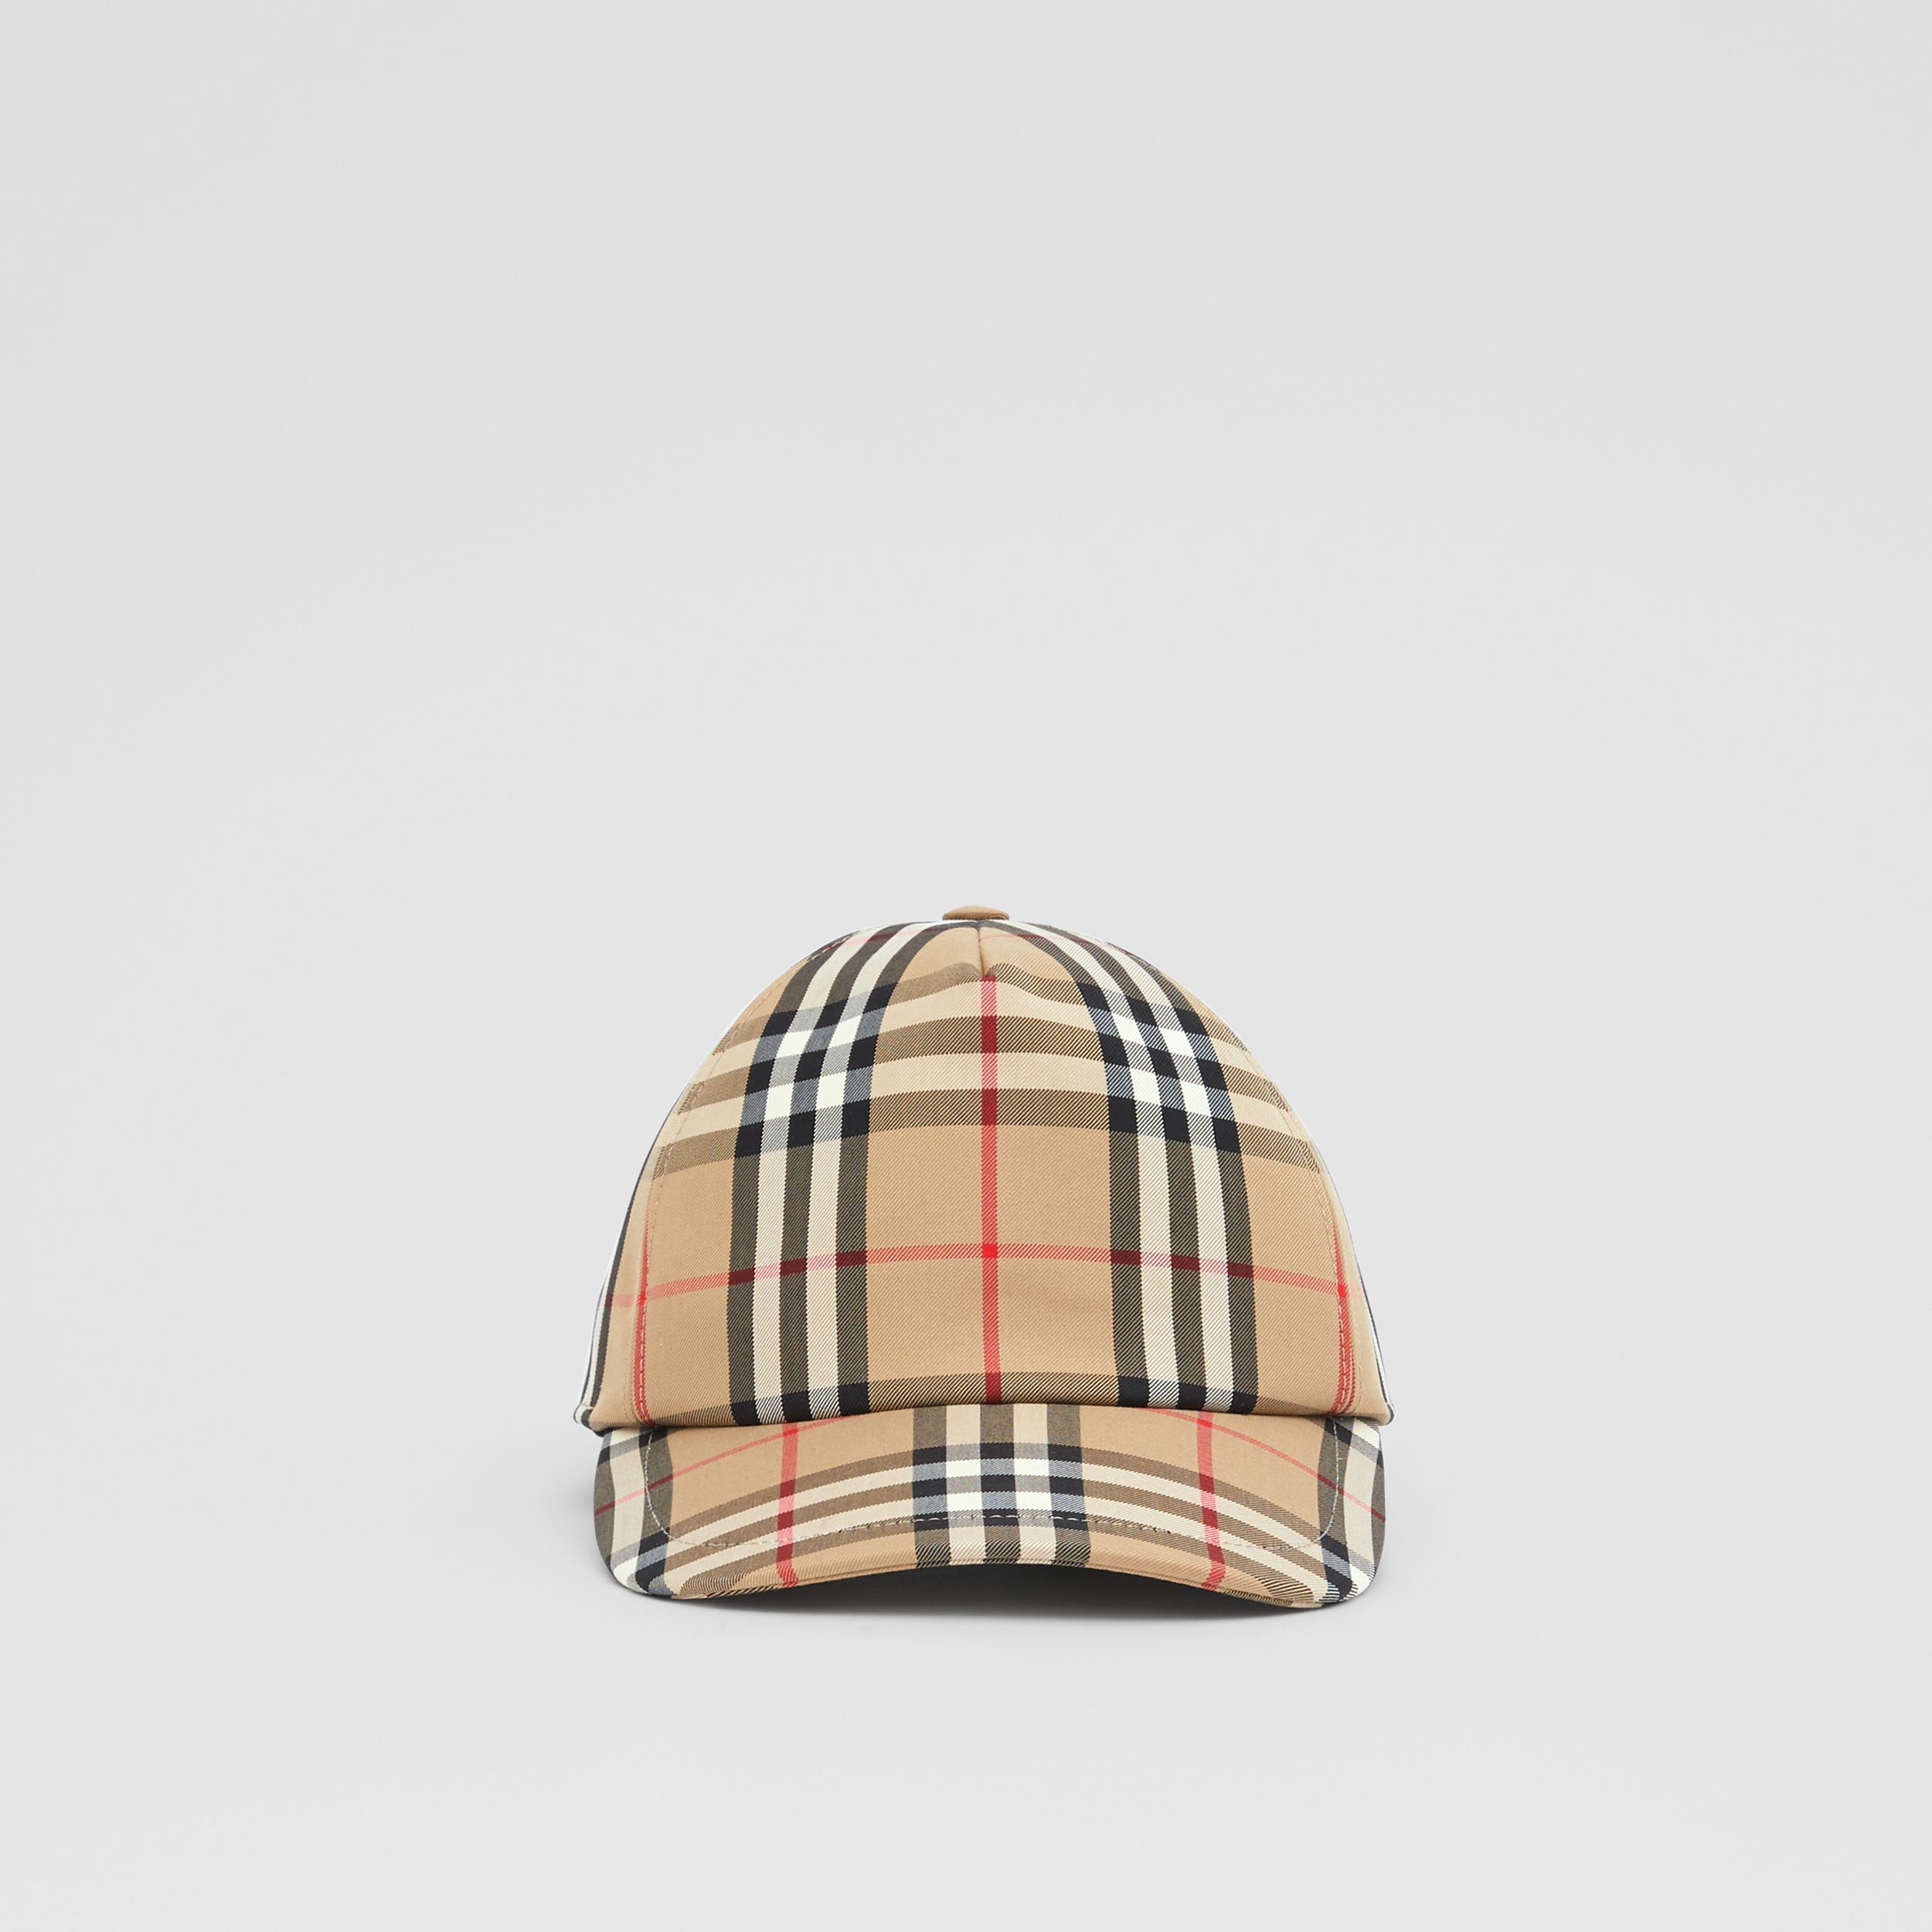 Logo Appliqué Vintage Check Baseball Cap in Archive Beige | Burberry - 1